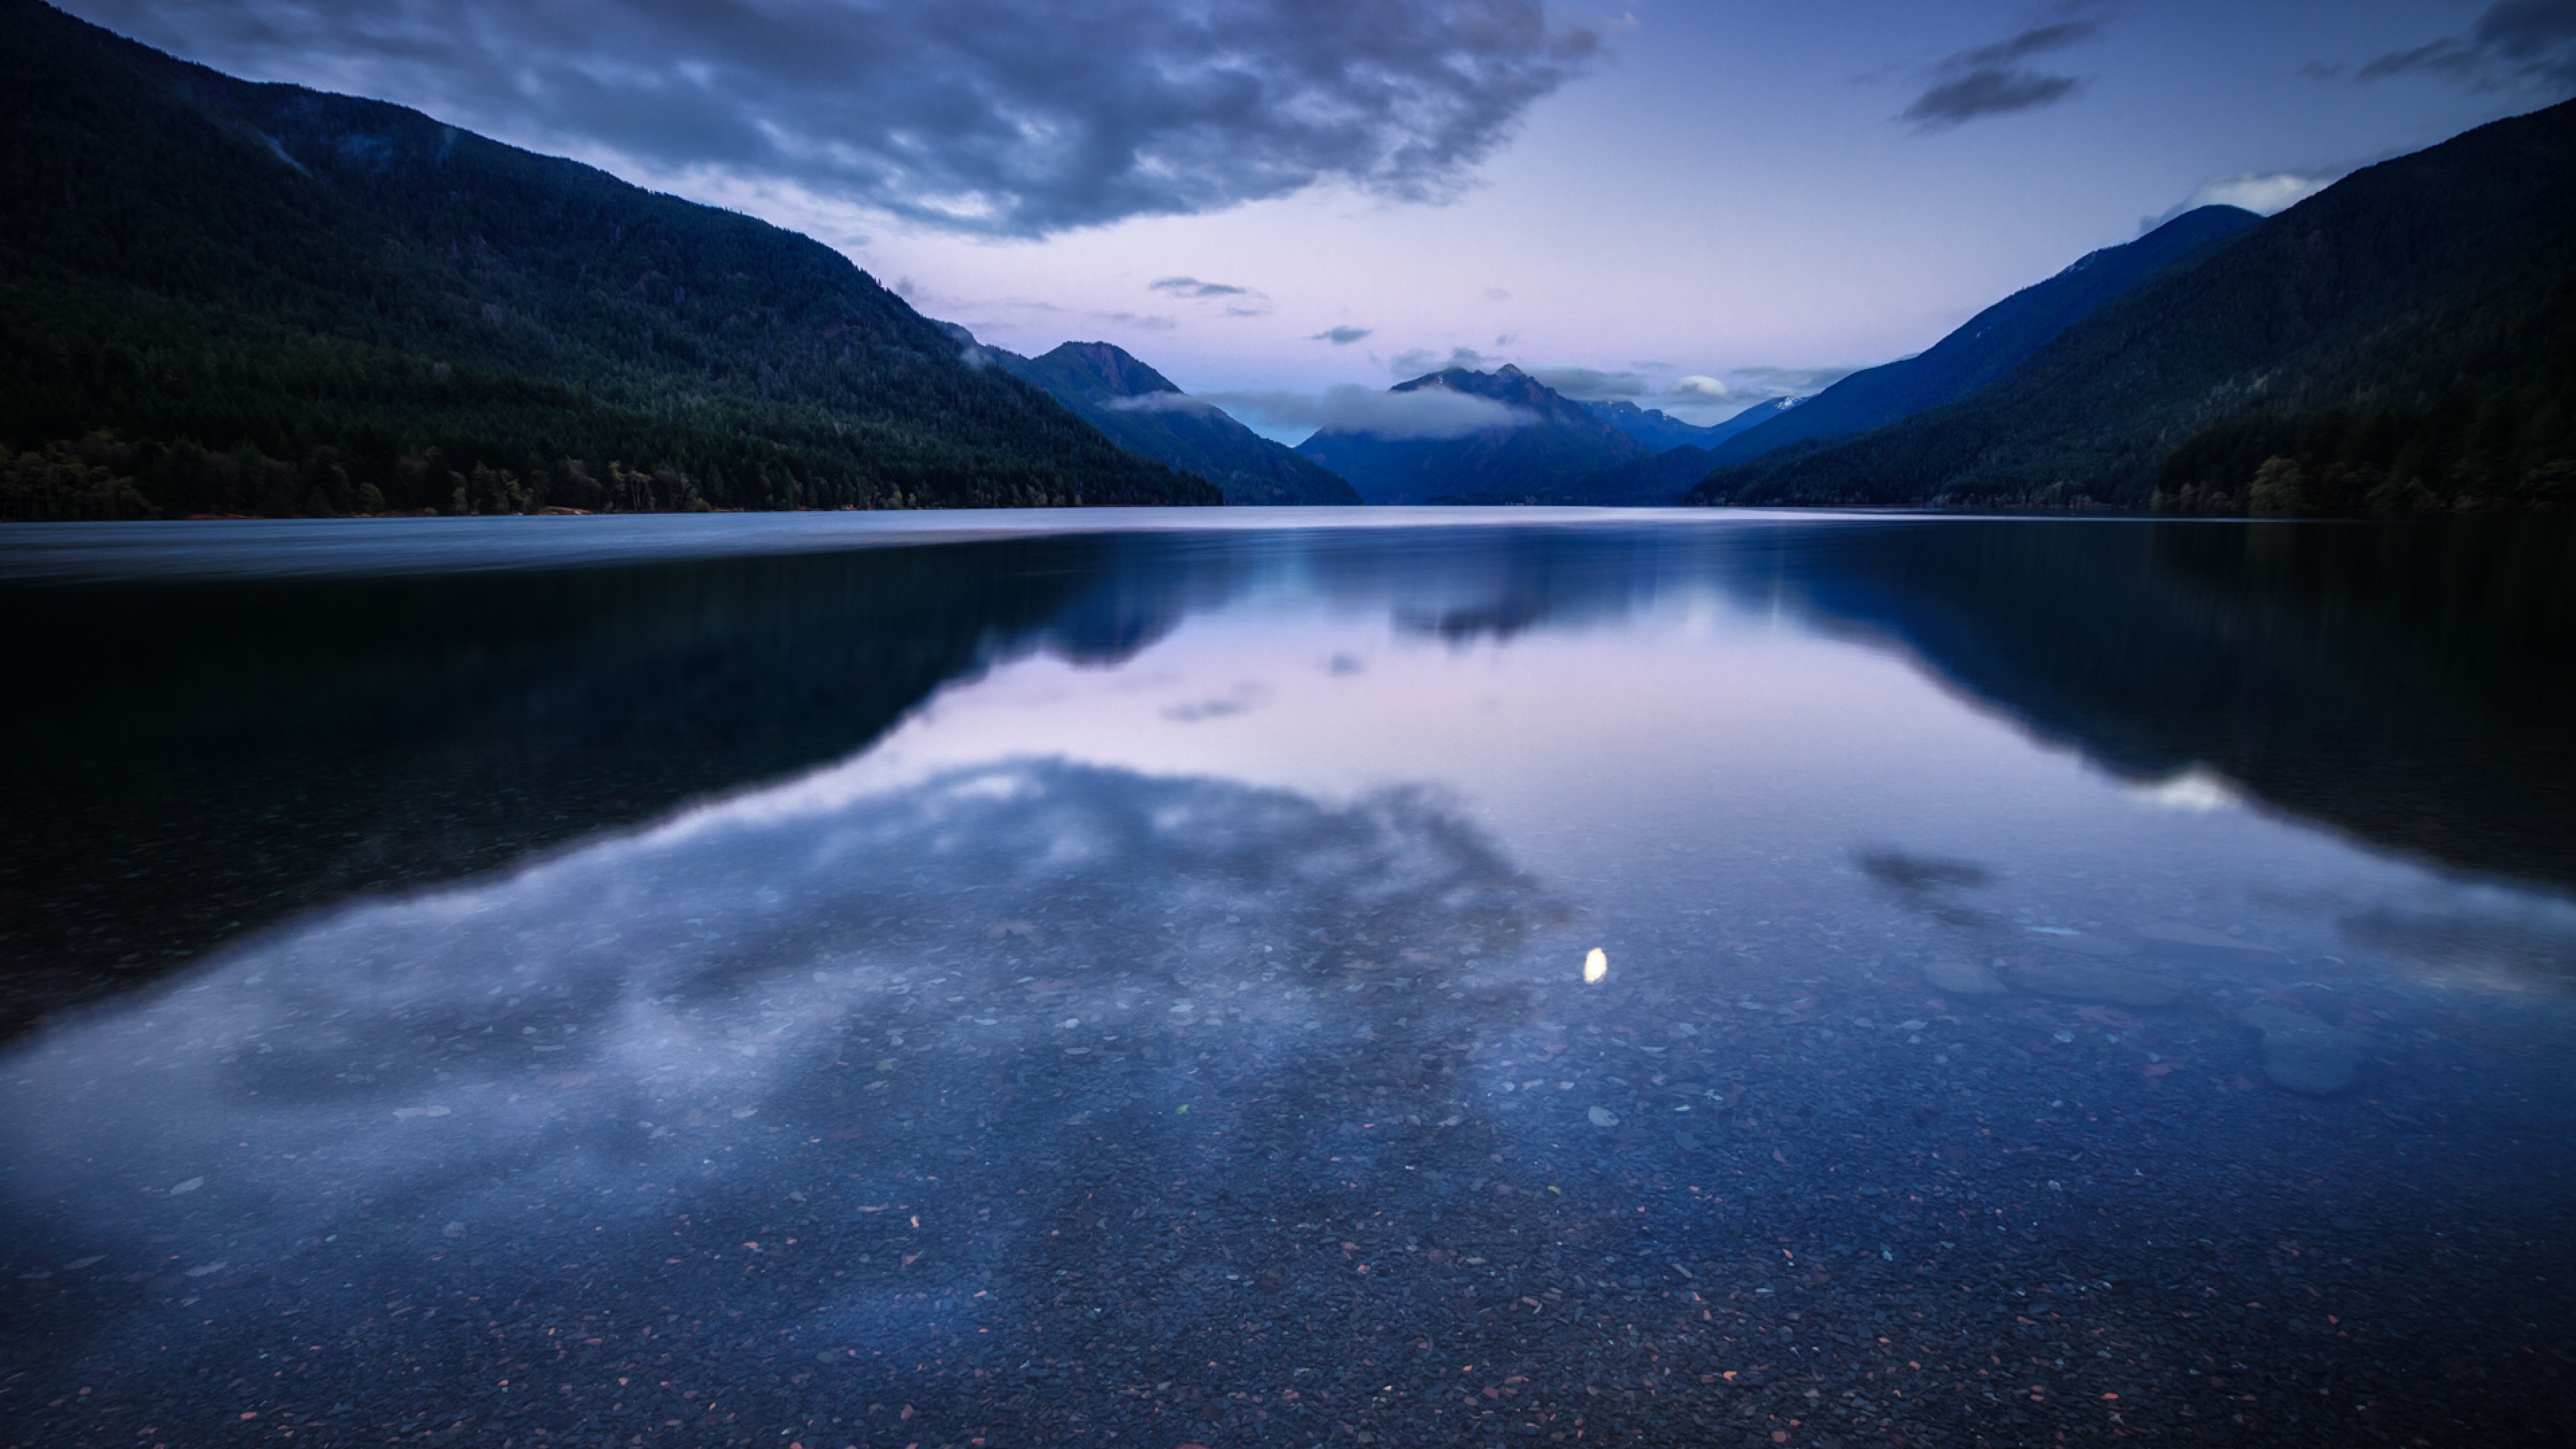 Wallpaper 3840x2160 night lake mountains water reflection 4K 3840x2160